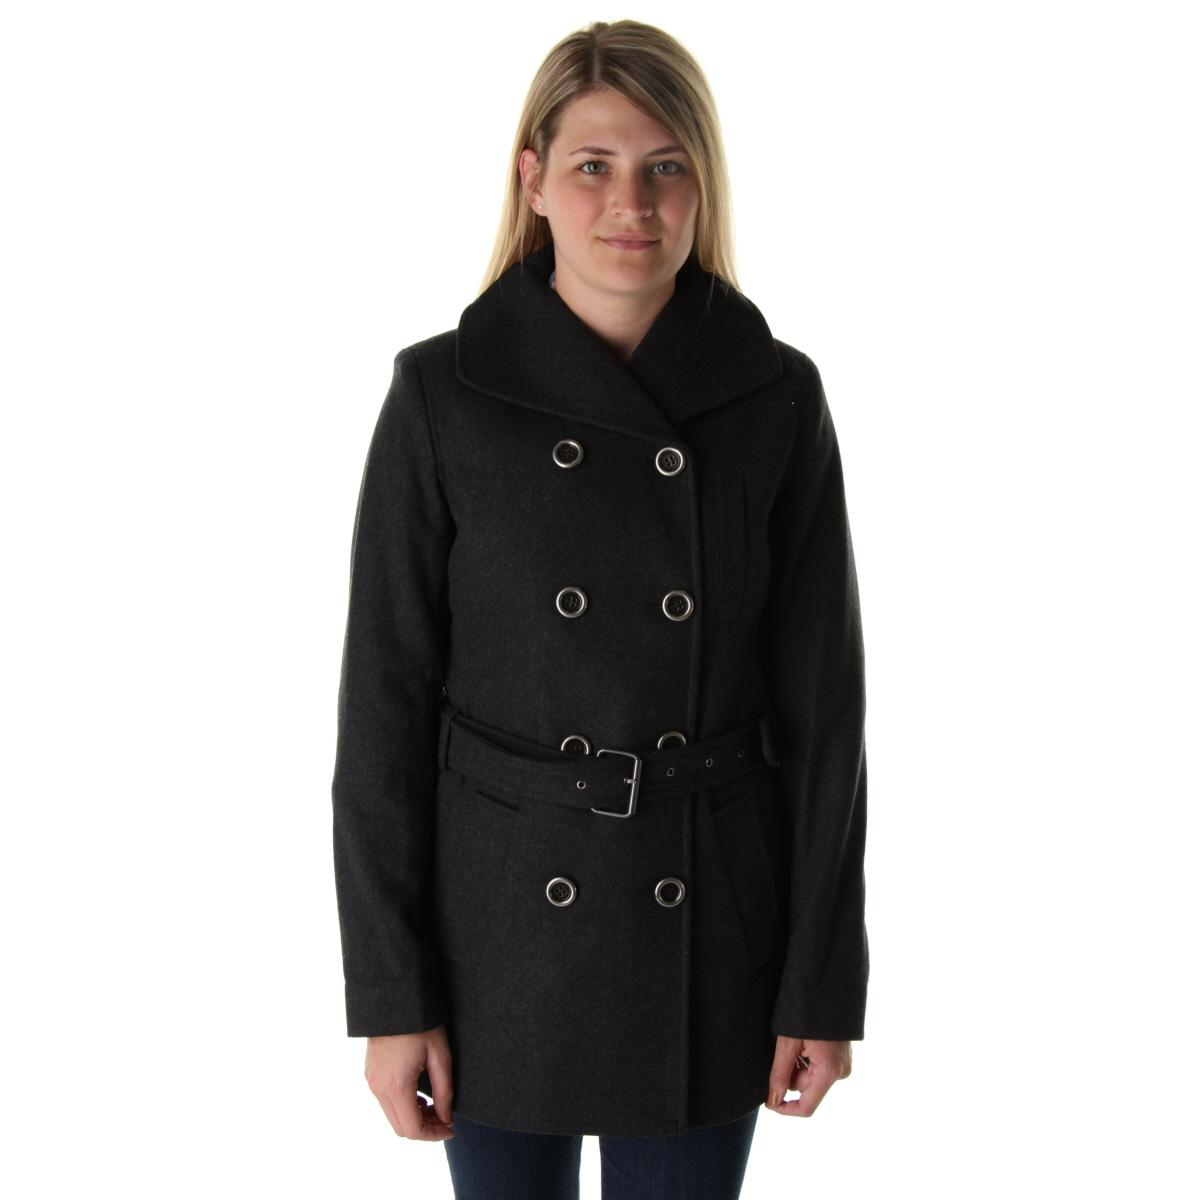 Double breasted womens pea coat